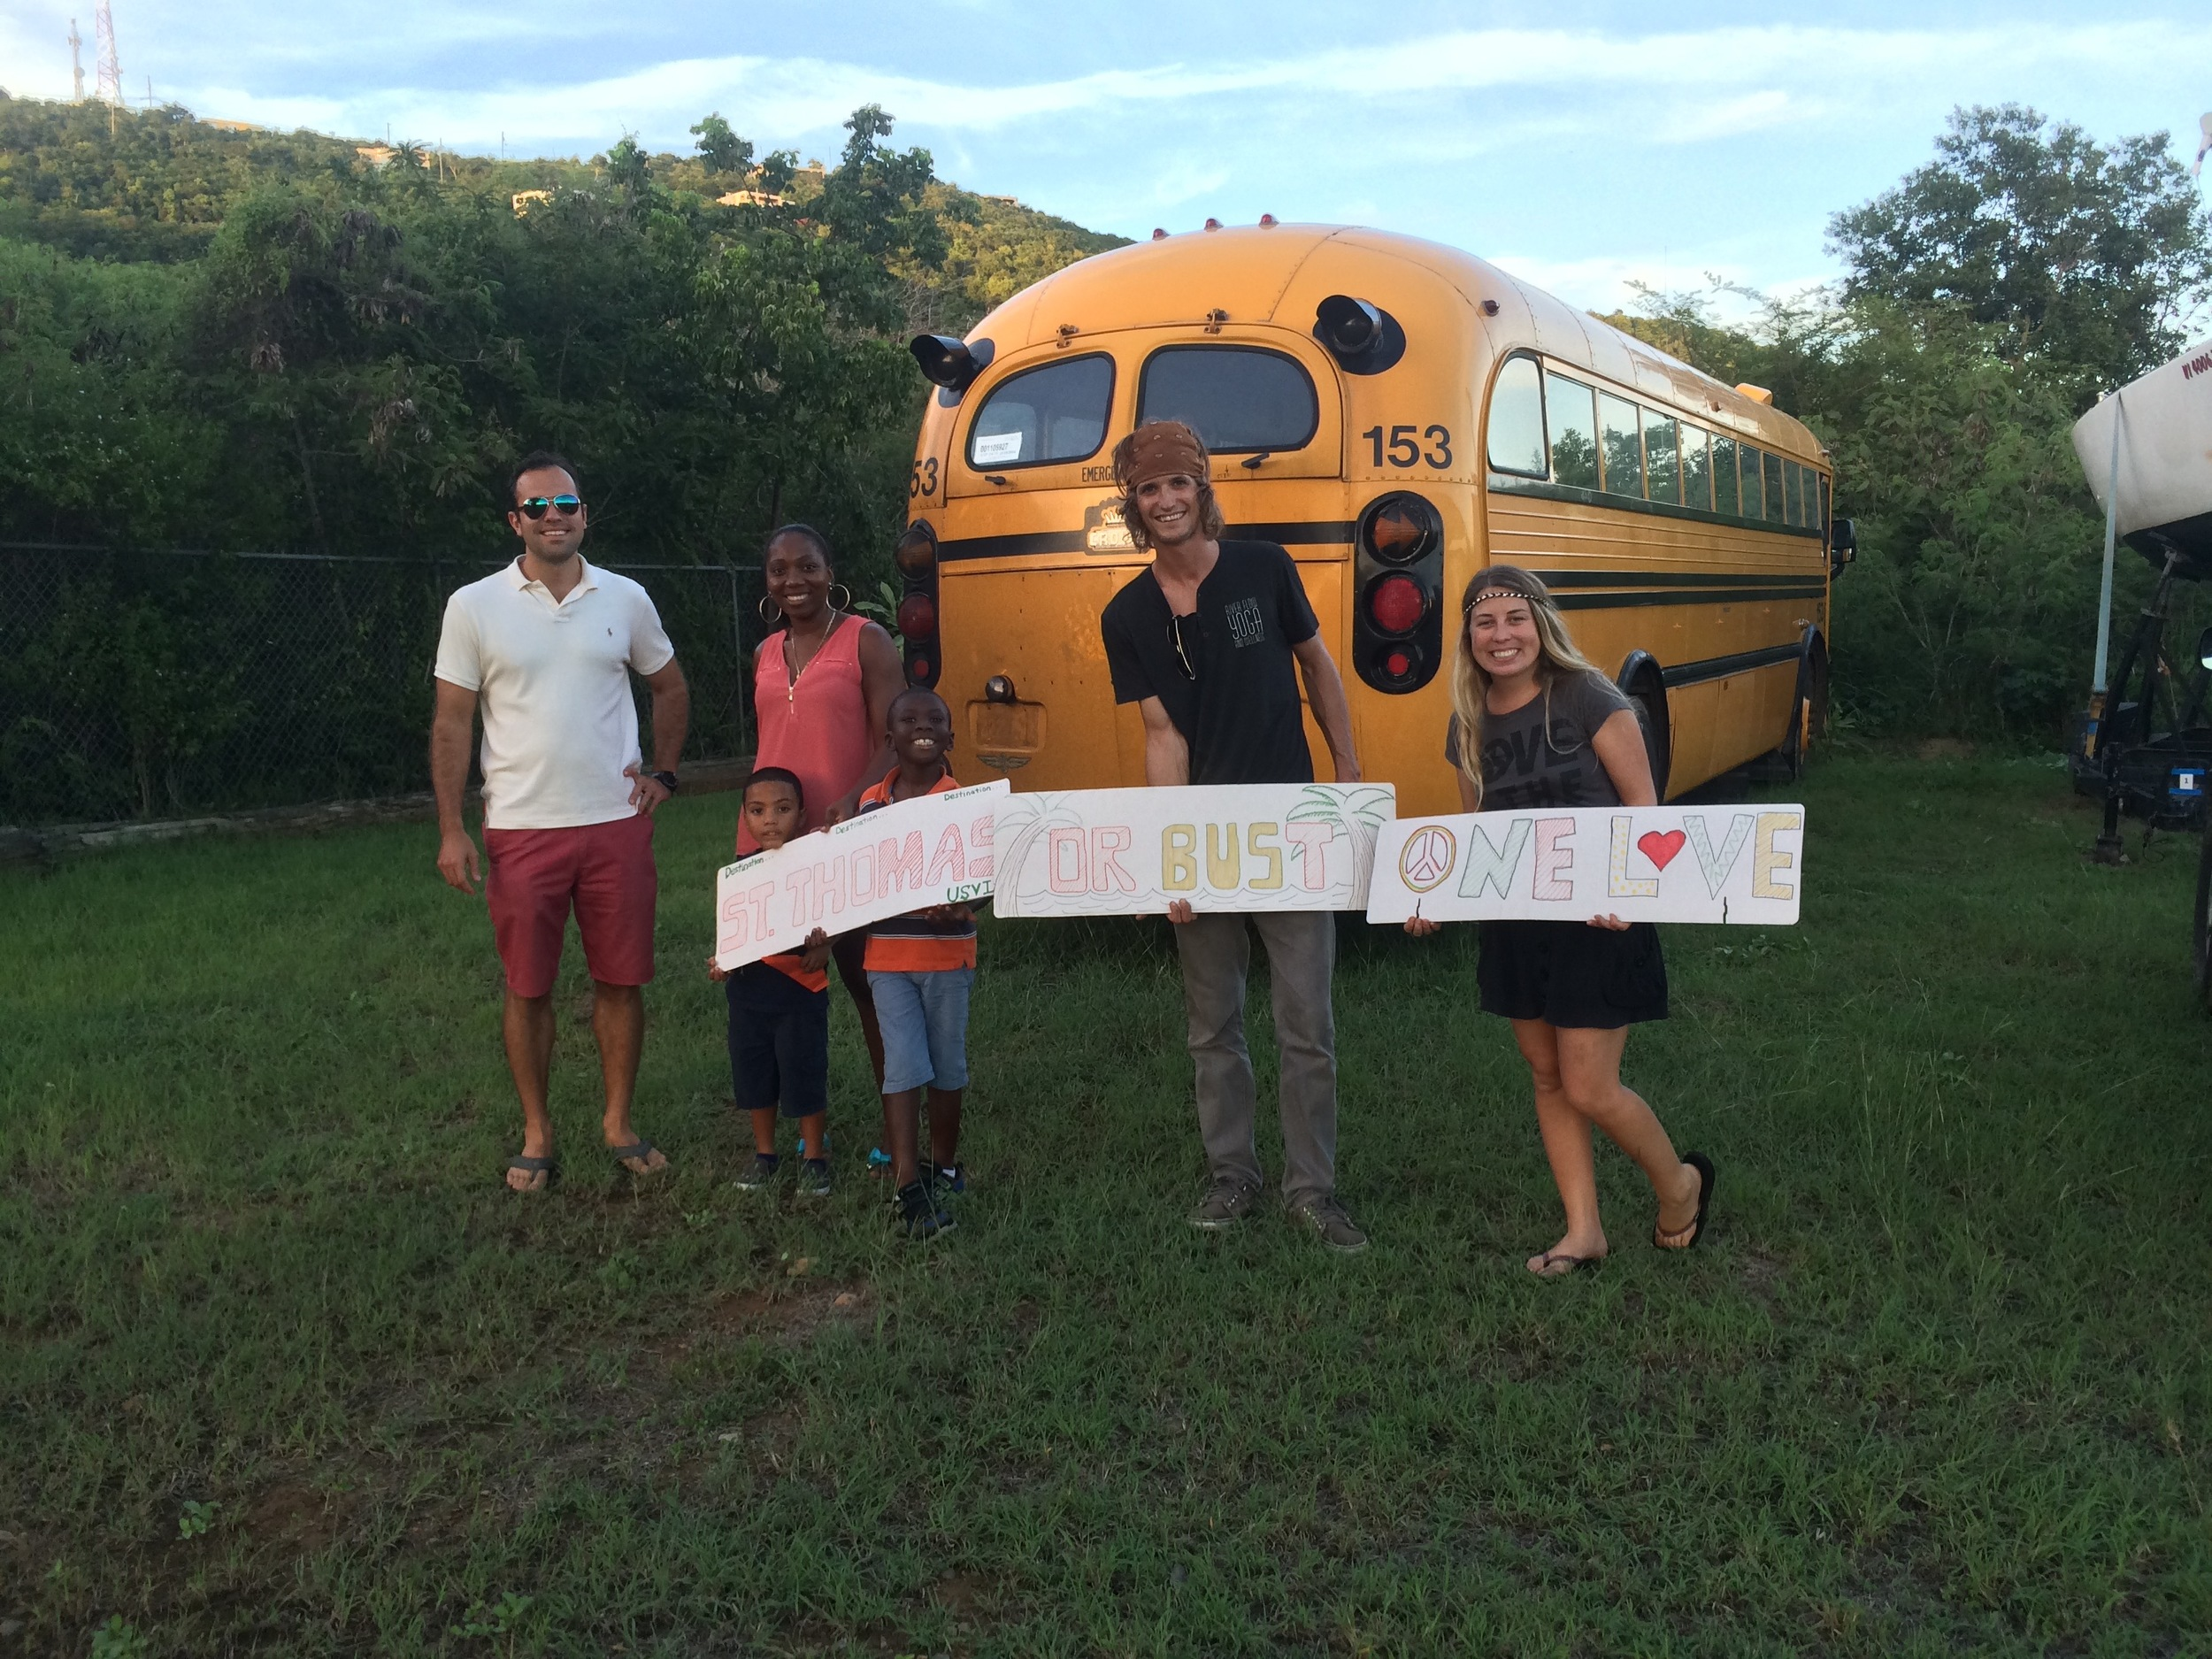 Amanda's little cousins DG and Cordell got a big kick out of the bus when it arrived on island. Adults got a kick out of it too ;)